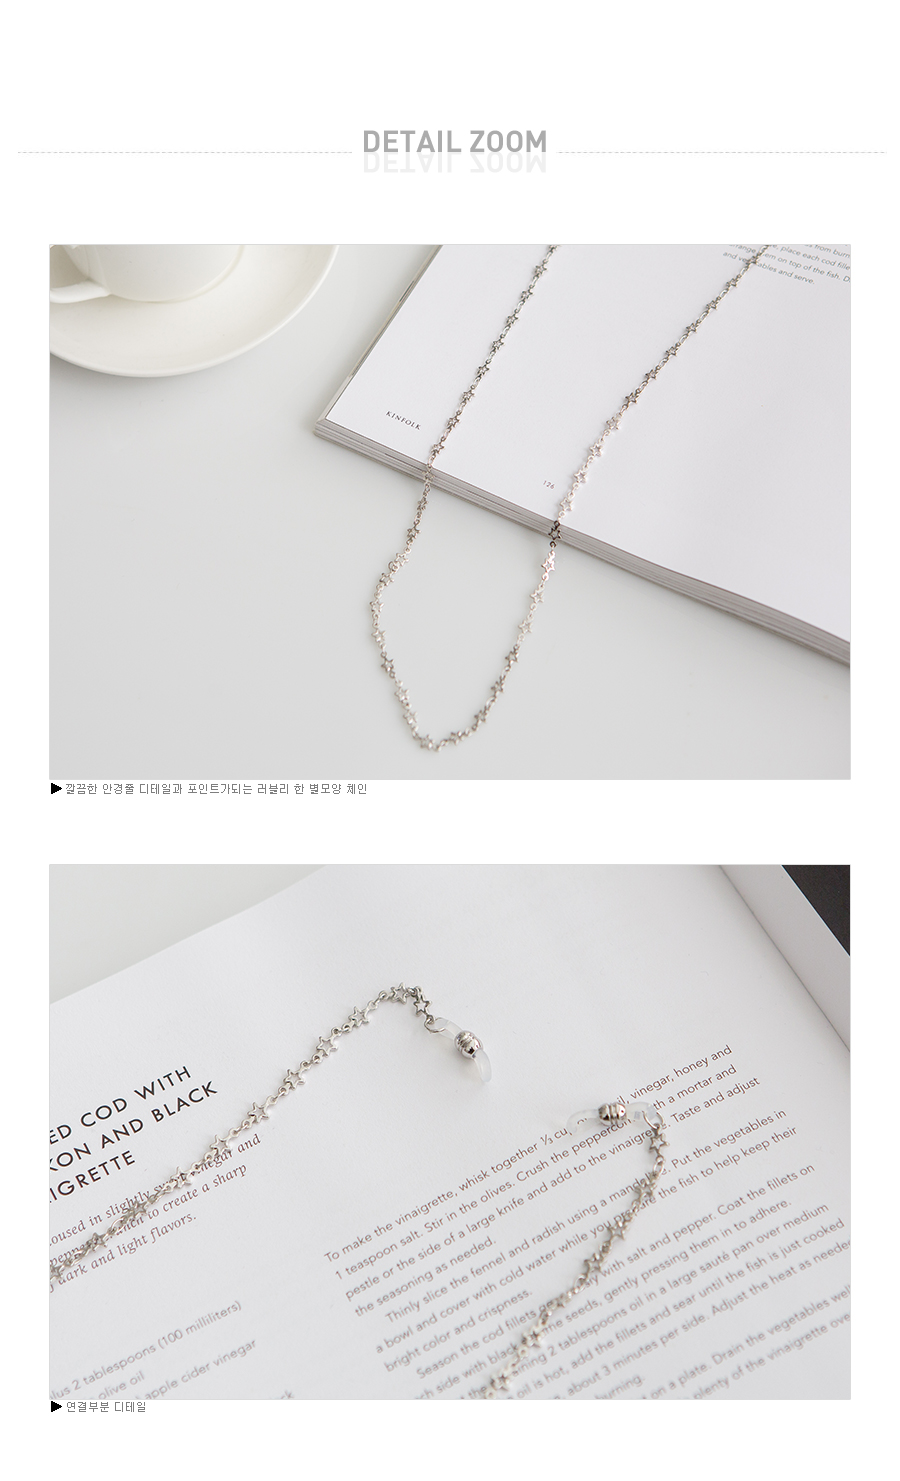 Eyeglasses, a chain of sliver #84546